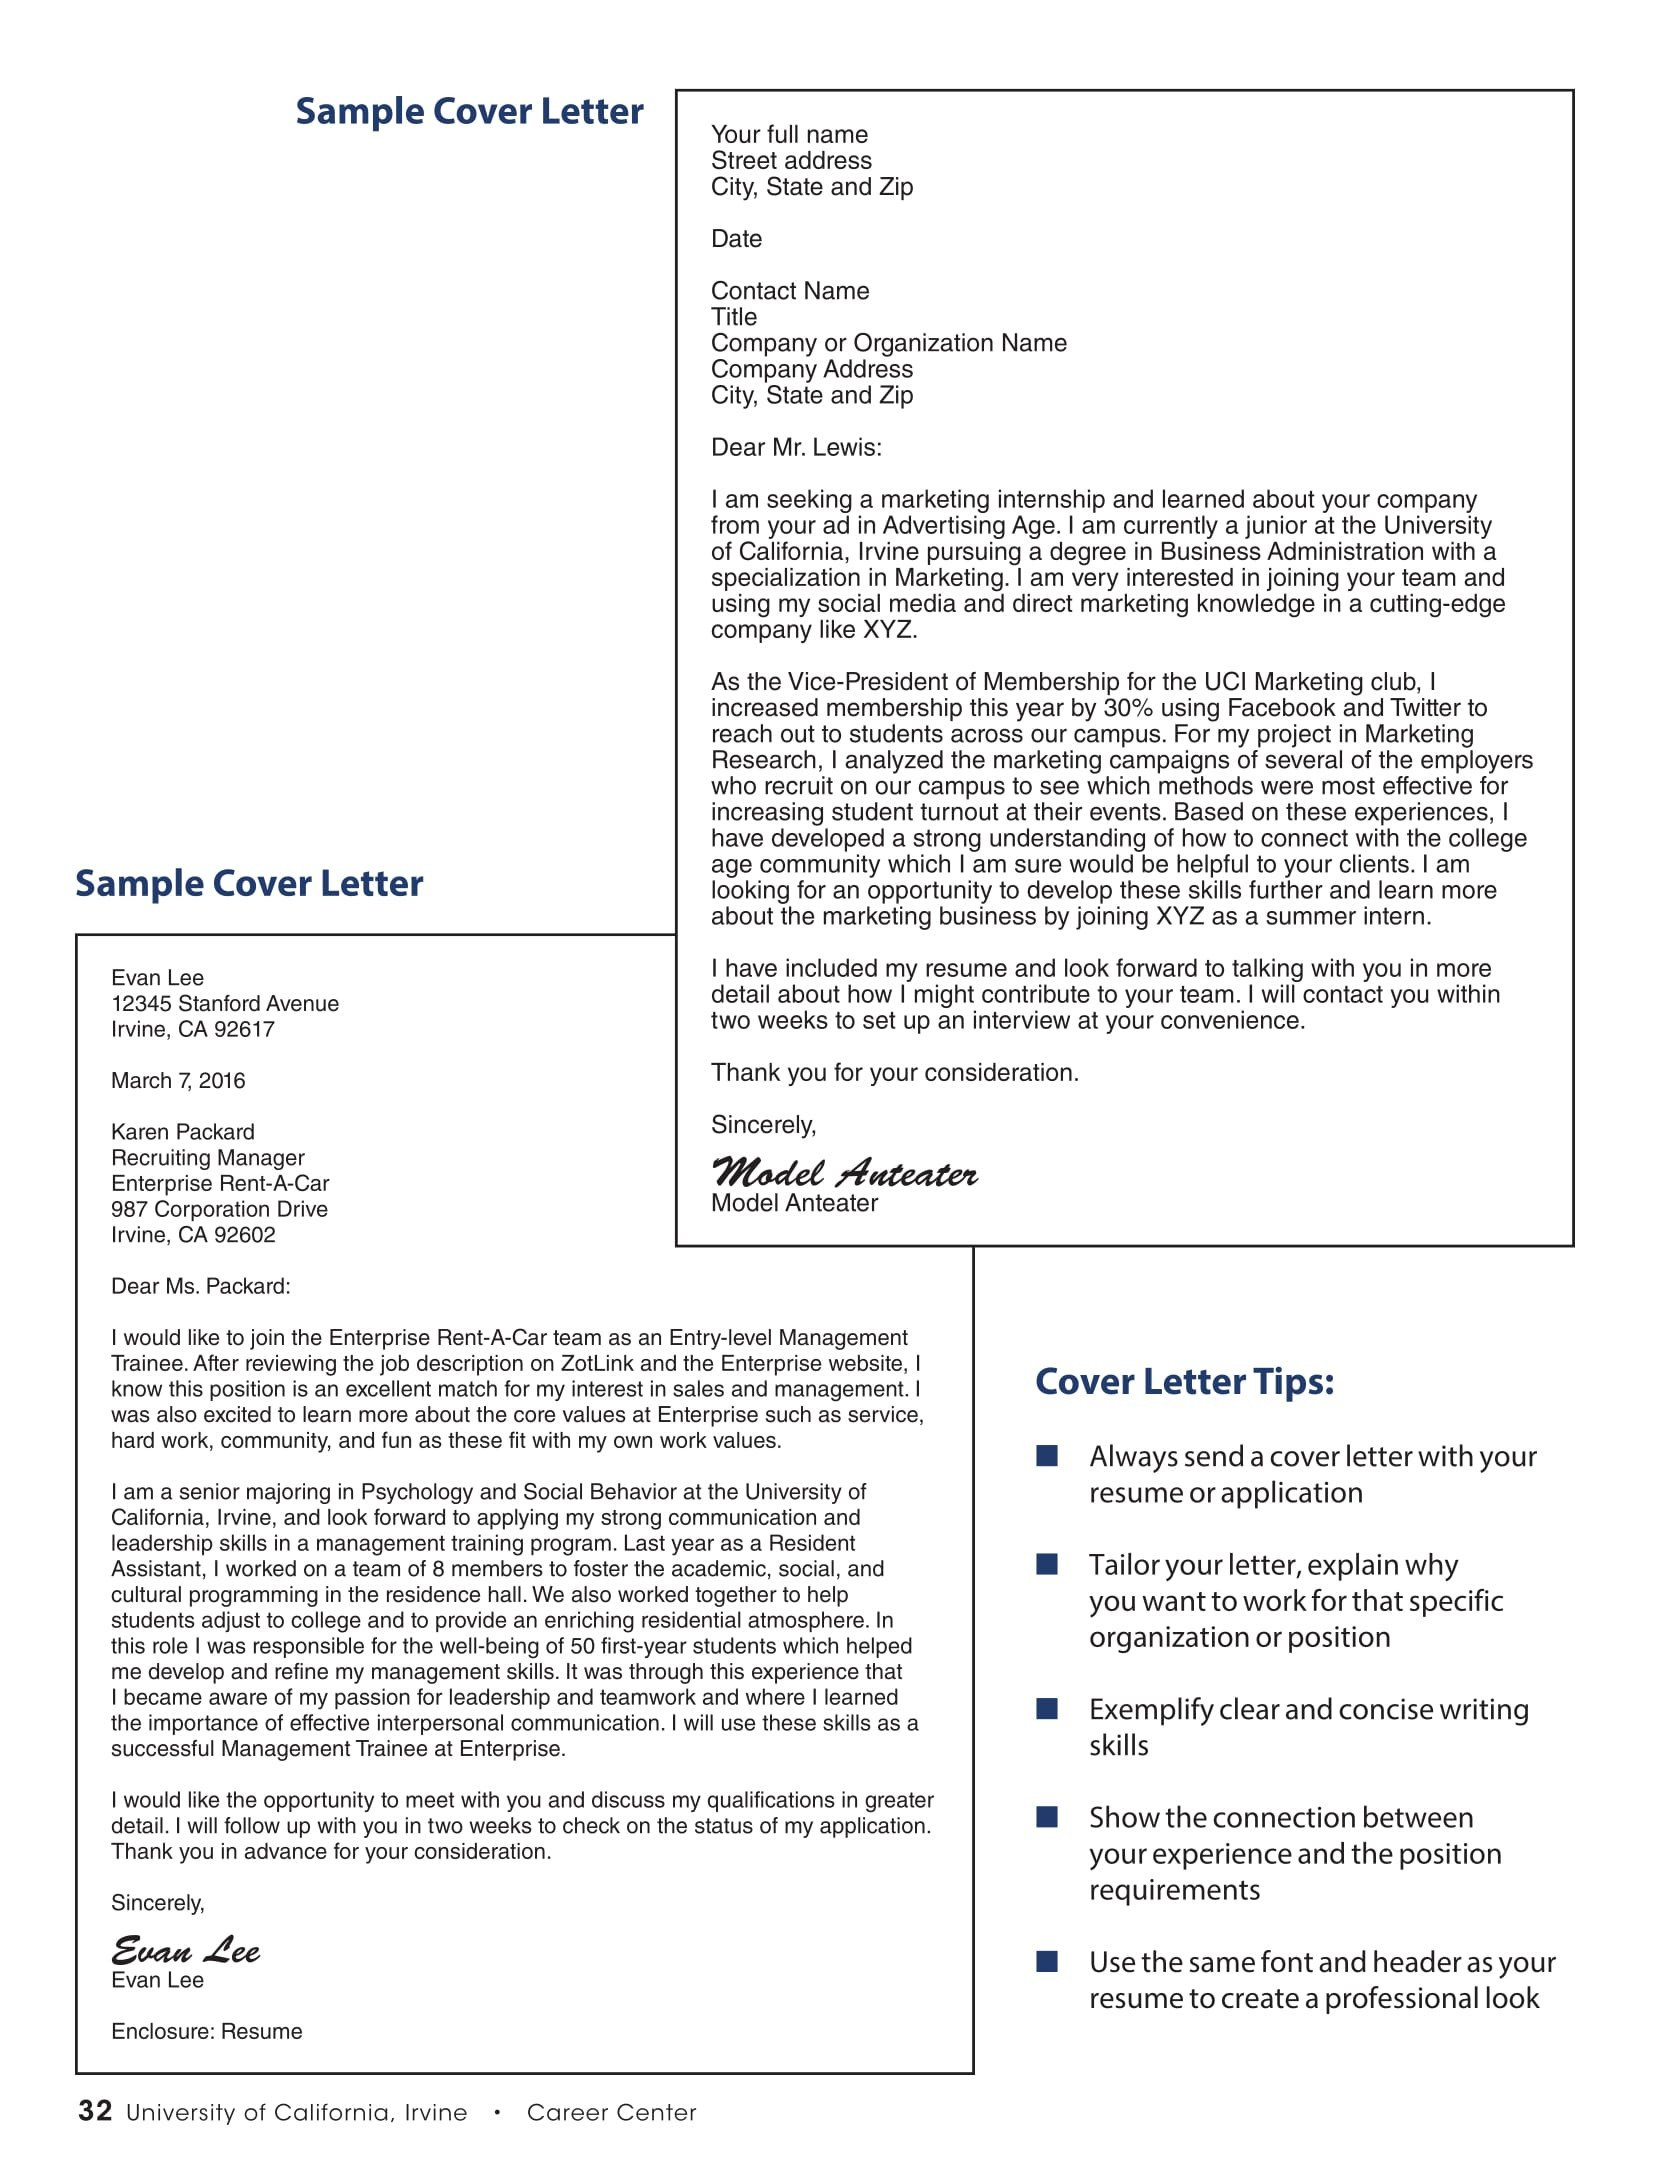 Best Cover Letter Template 32 Best Sample Cover Letter Examples for Job Applicants